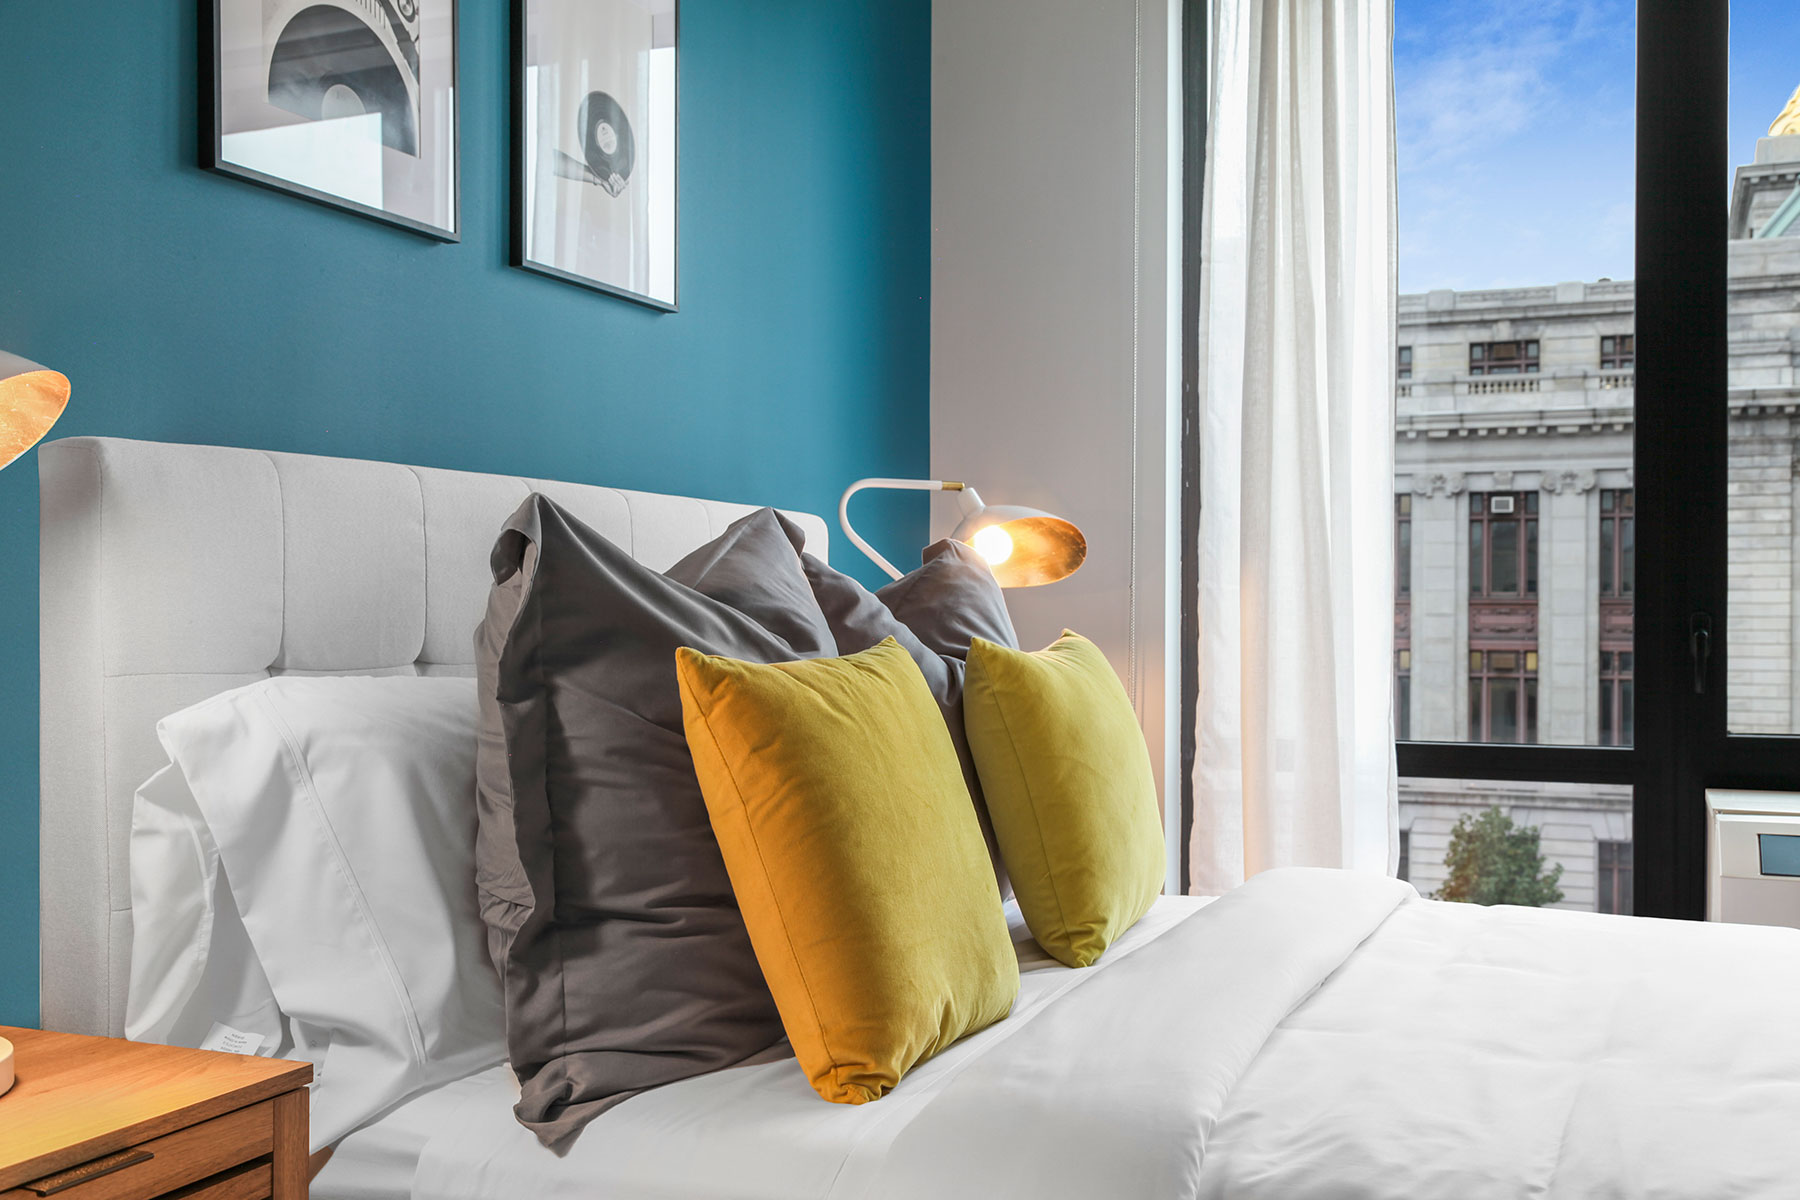 Detail of bed with modern bedding, fabric headboard, teal accent wall, and window